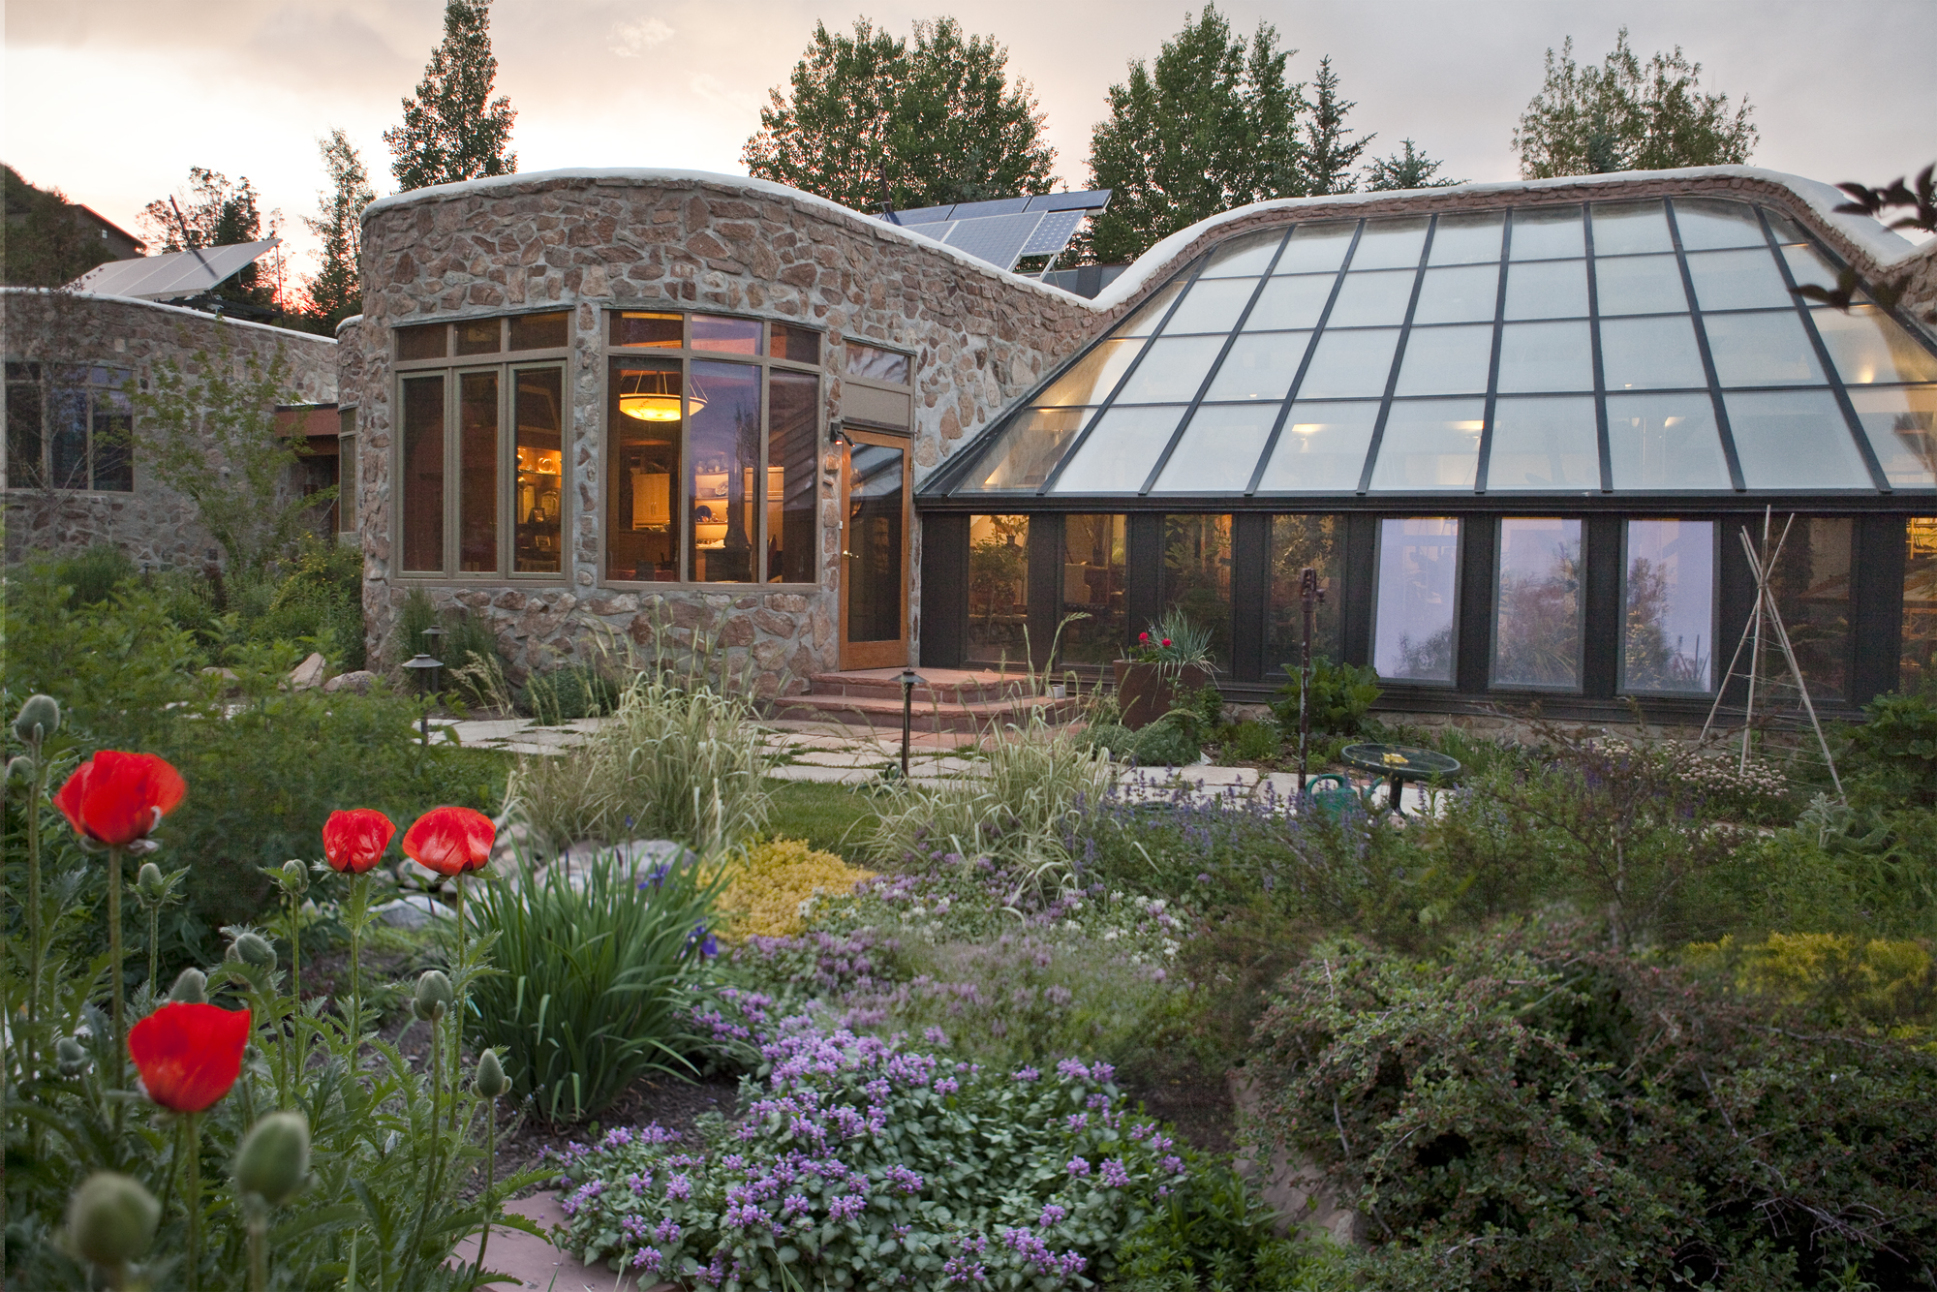 Evening summer view of the outdoor garden at the Banana Farm (in Colorado)    Proto credit: Judy Hill Lovins